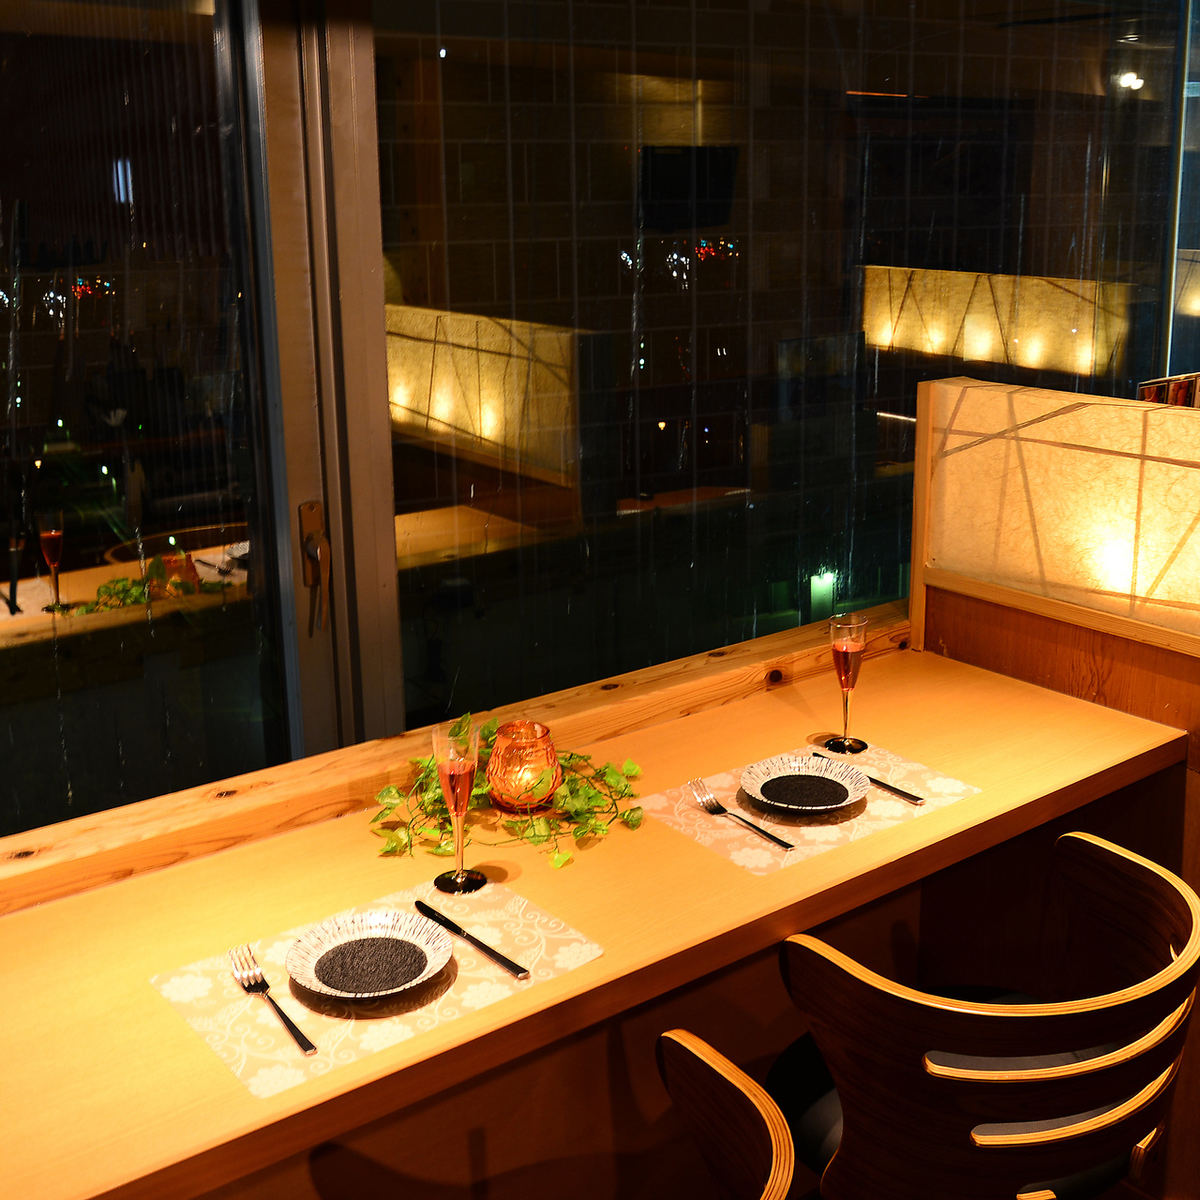 Dinner while watching the night view recommended for adult ◎ It will be an unforgettable and valuable time ♪ When looking for a pub in Umeda, Japanese Modern Private Room Space, Concluded - YUI - To ☆ 彡 ☆ 彡 [ All-you-can-drink all-you-can-drink all-you-can-drink night view in Umeda pub Recommended girls' s party